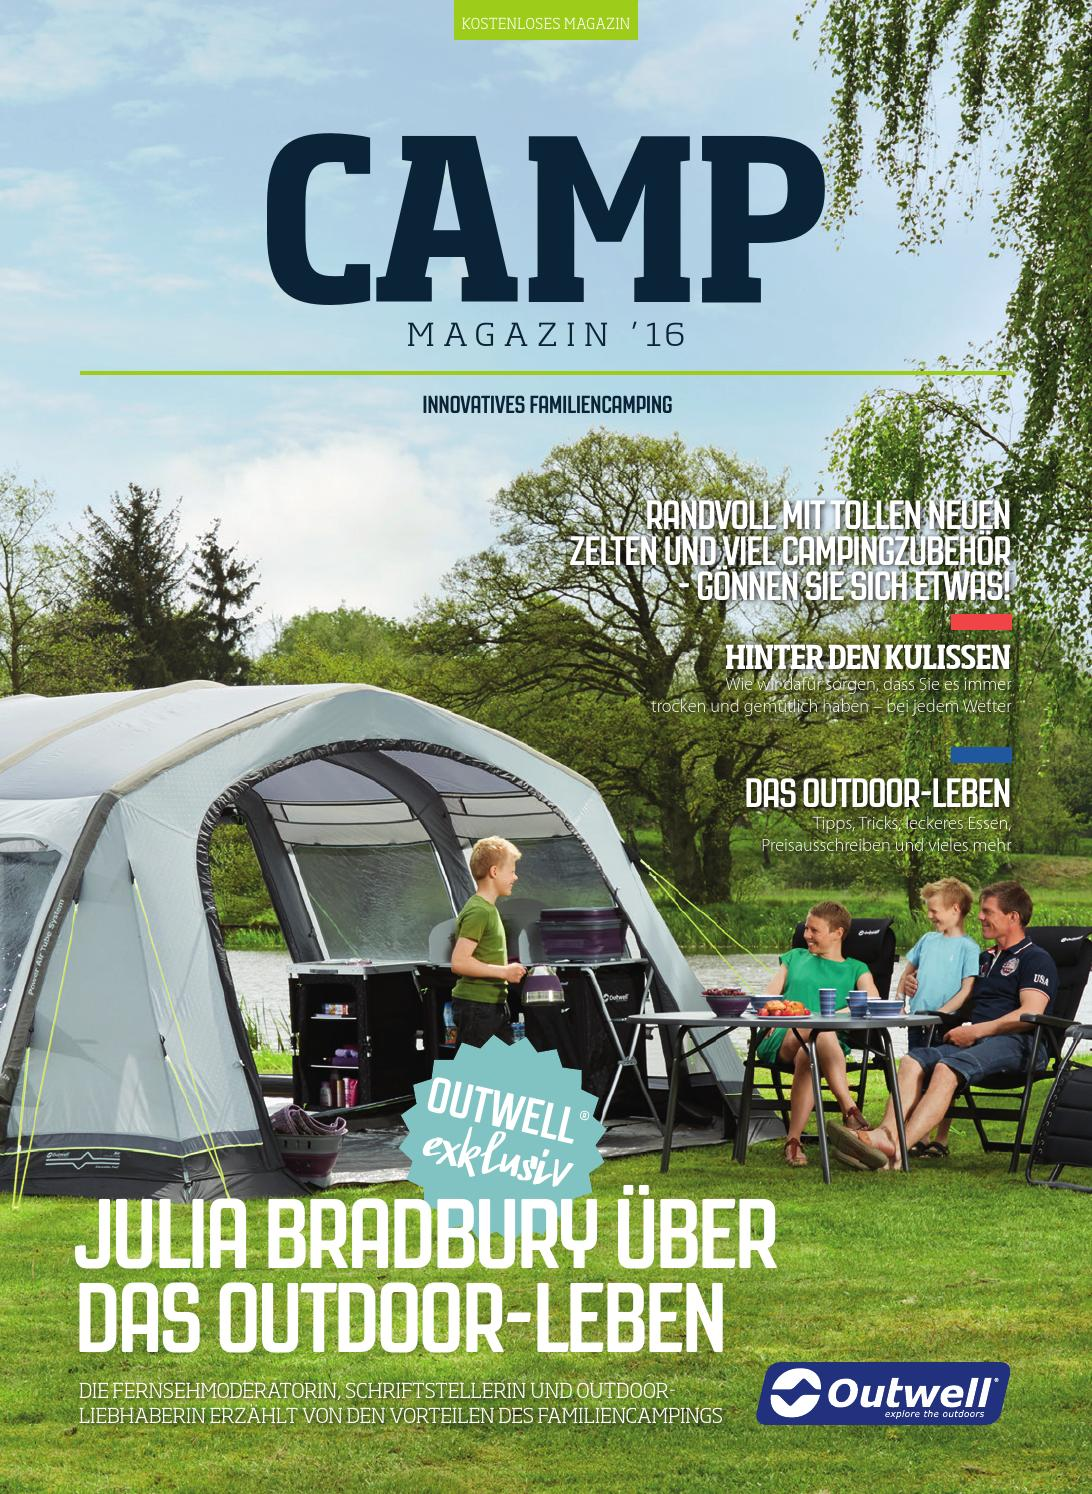 Outwell Outdoor Küche Outwell Camp Magazine 2016 By Oase Outdoors Issuu